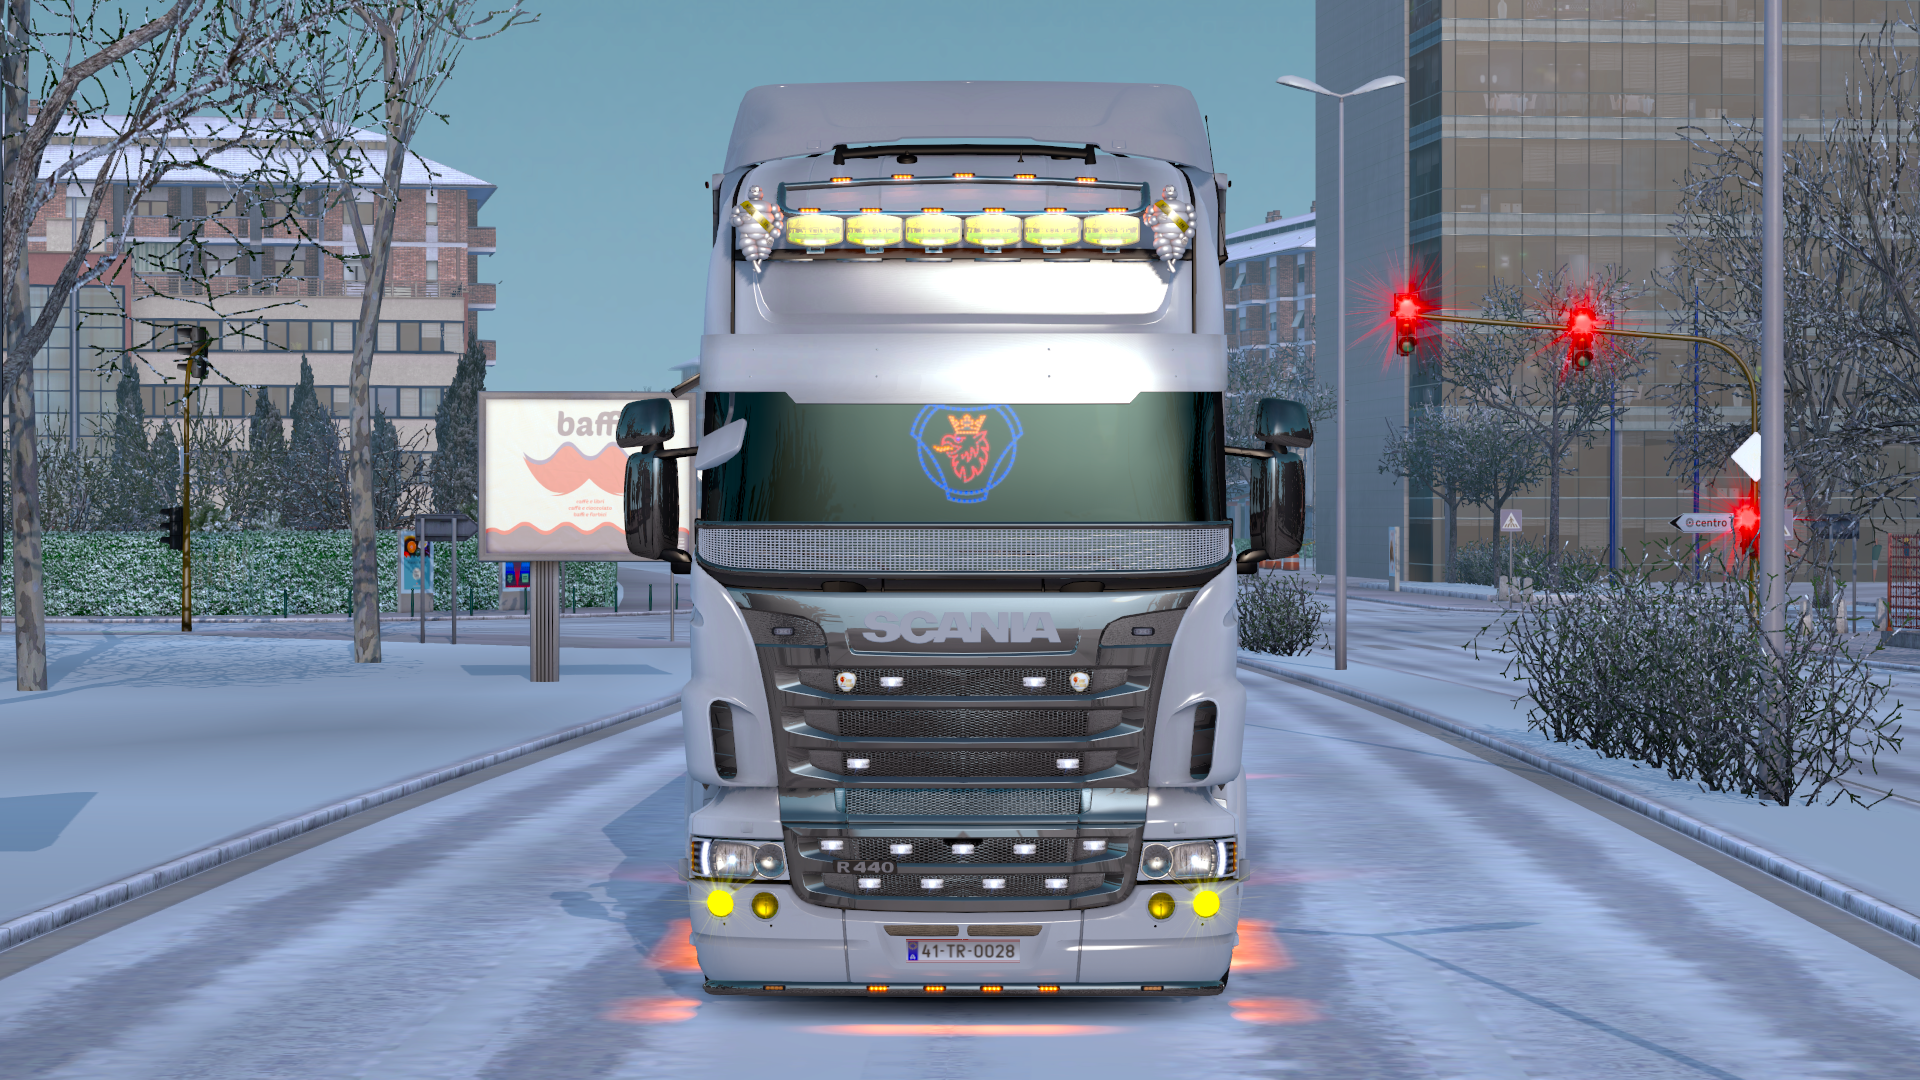 ets2_20190106_021451_00.png